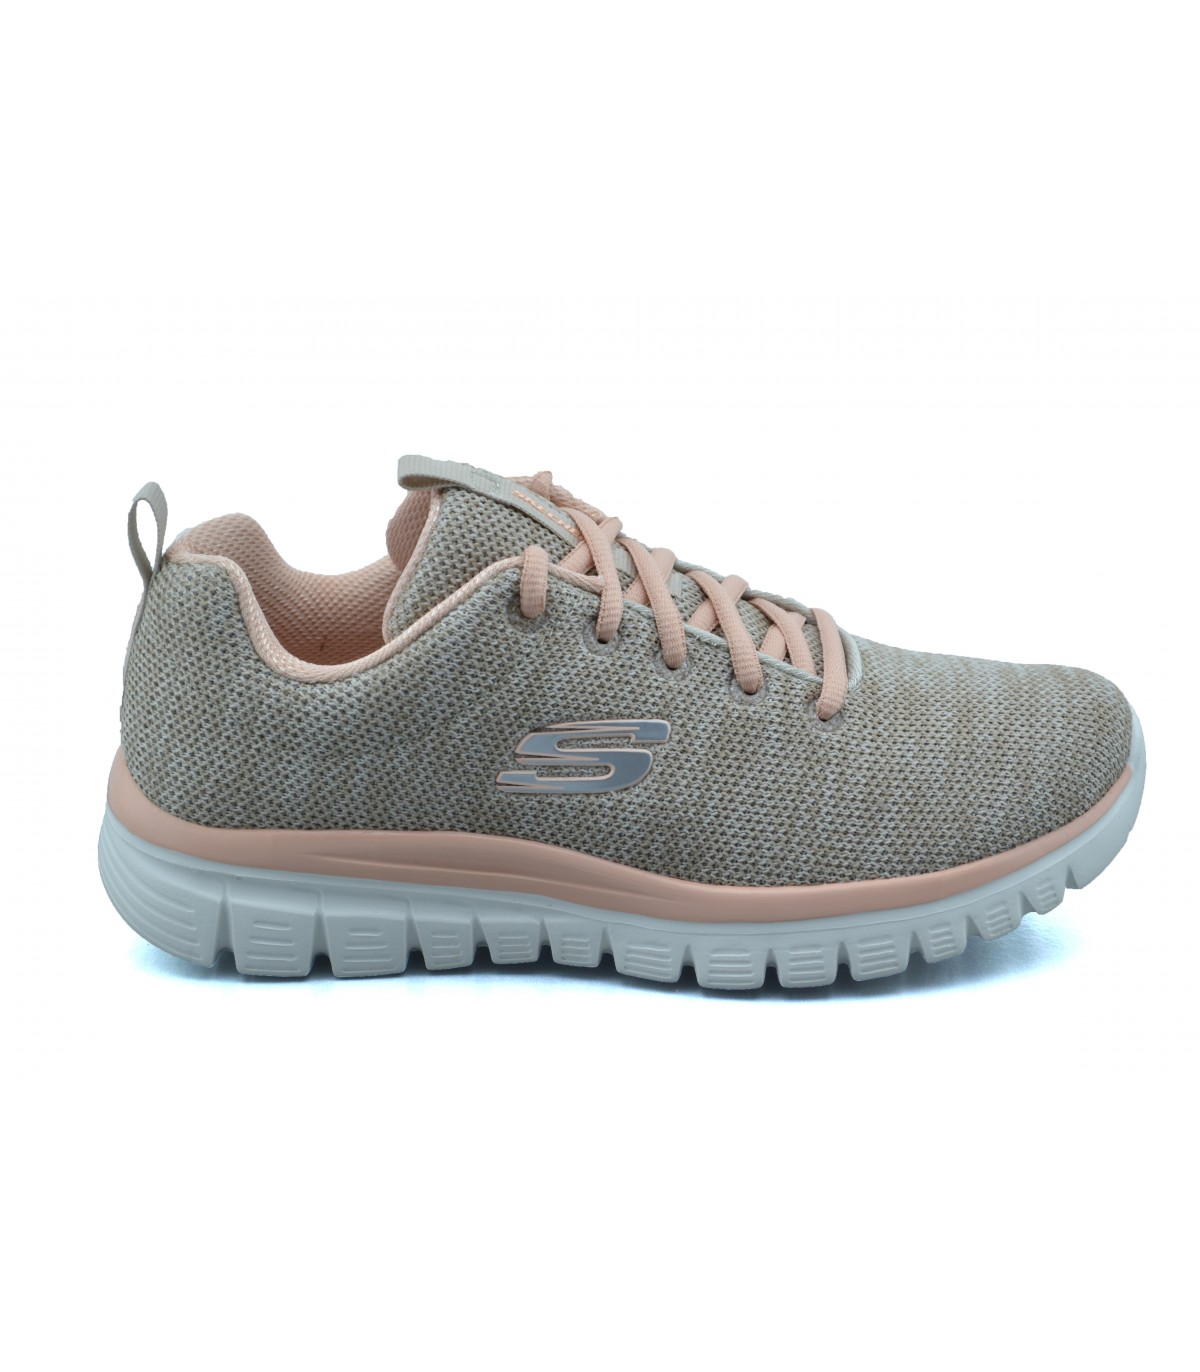 9217184004062 Deportivas mujer SKECHERS Twisted Fortune